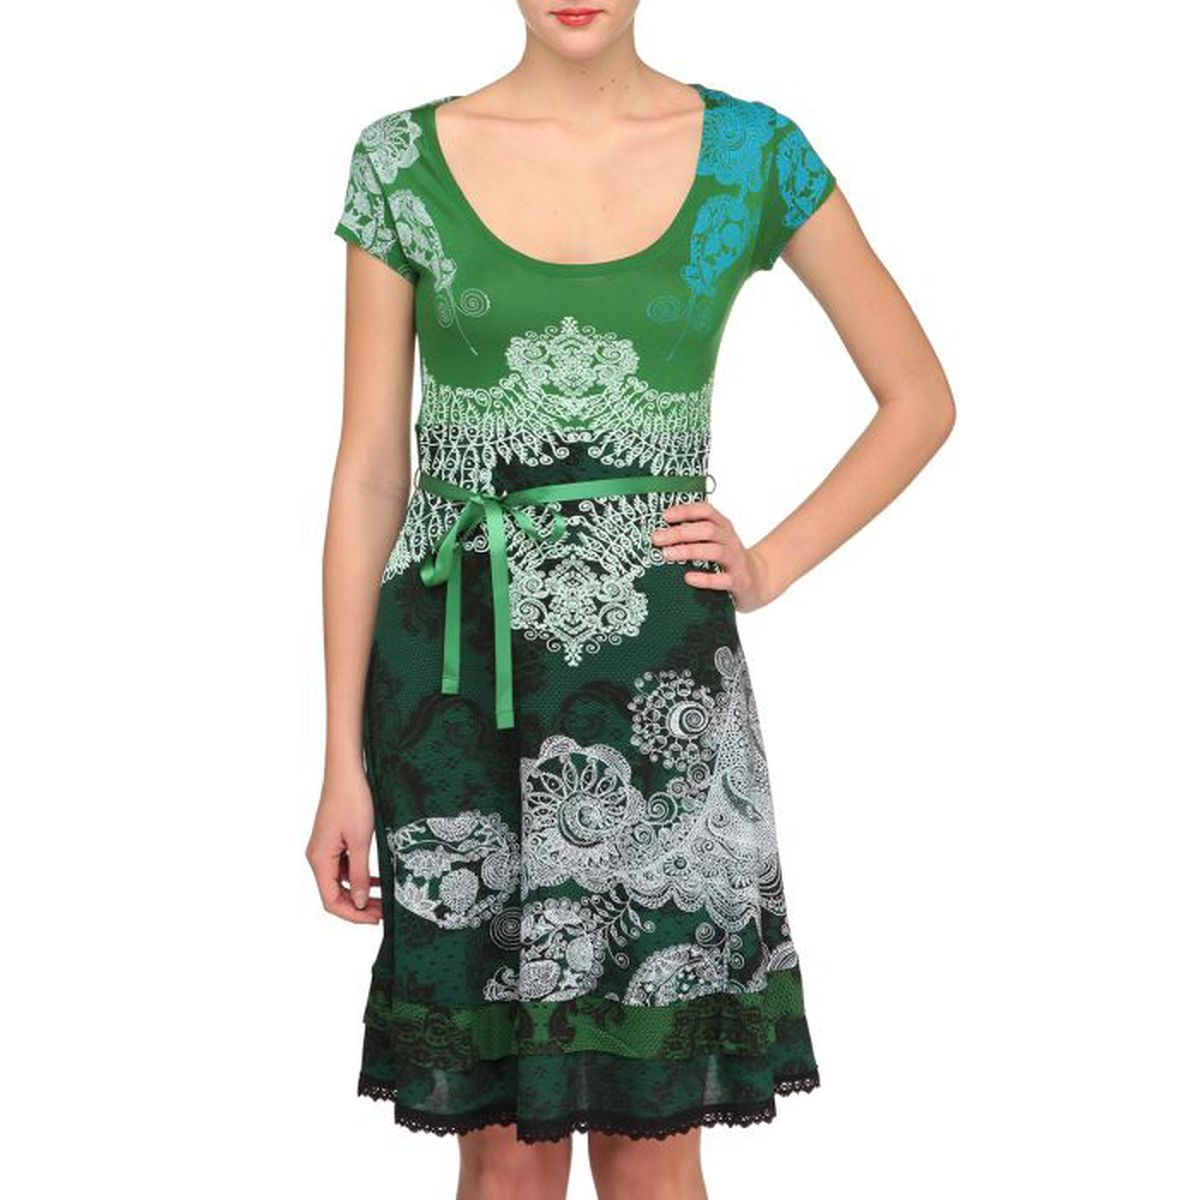 desigual robe paris femme vert achat vente robe cdiscount. Black Bedroom Furniture Sets. Home Design Ideas